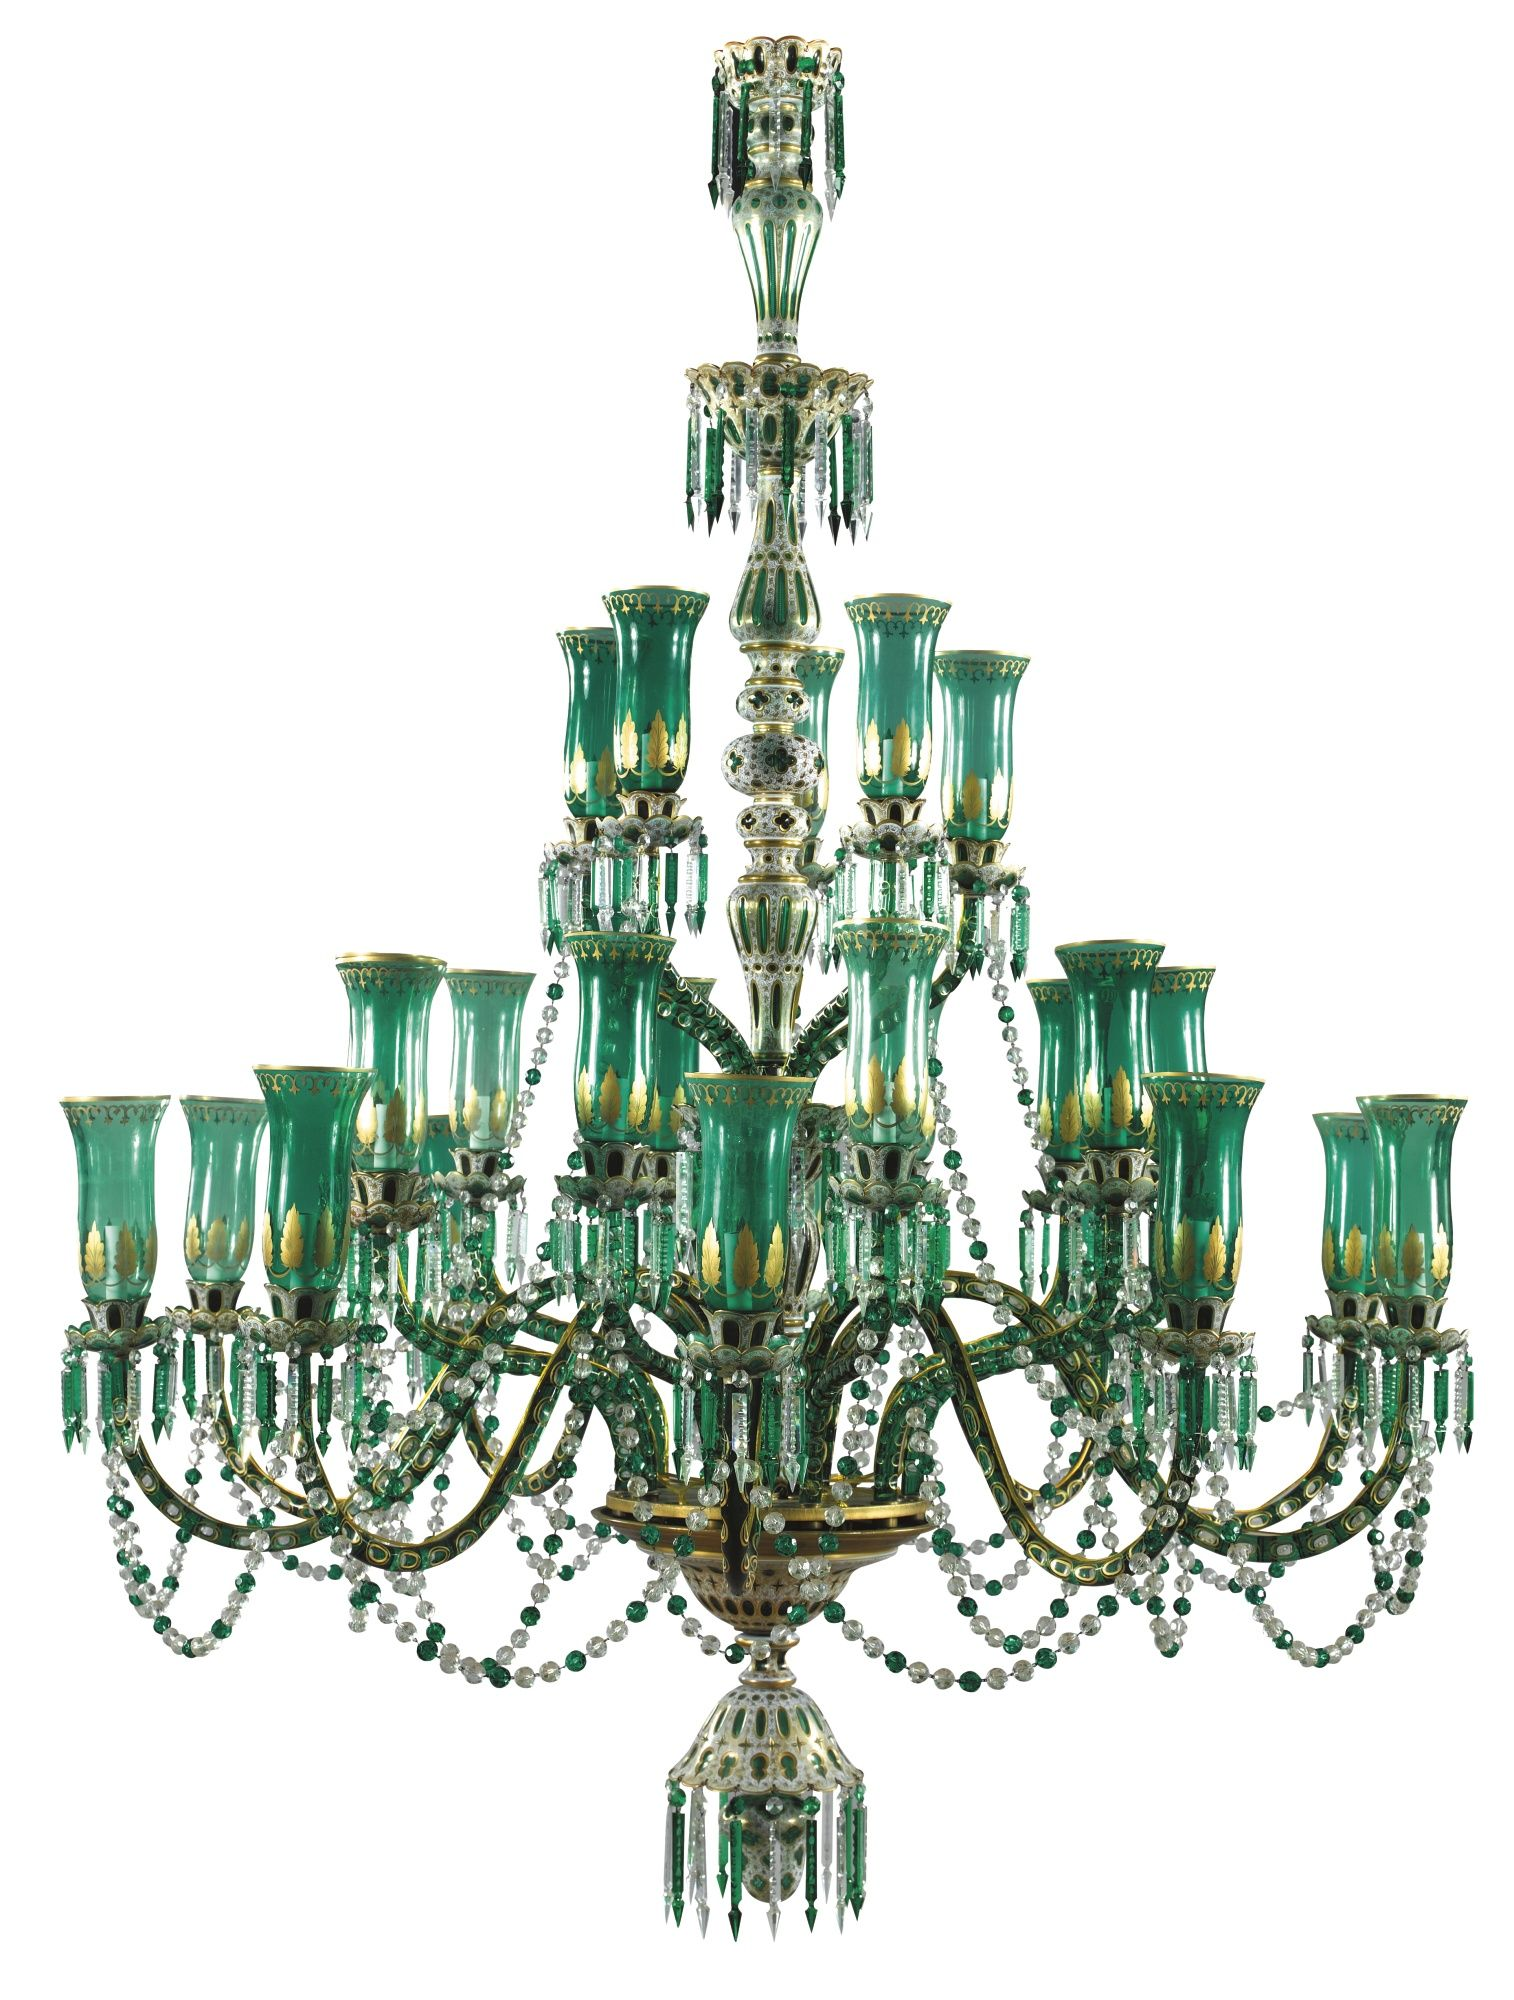 full miniature nursery kahaz french scandinavian plastic crystal chandelier of black beads wire chandeliers and small on buy size petite chair dining with white flower category sonneman uk coastal raindrop light style table designer green rattan leaf pink arm large clearance clear modern ornate for glass